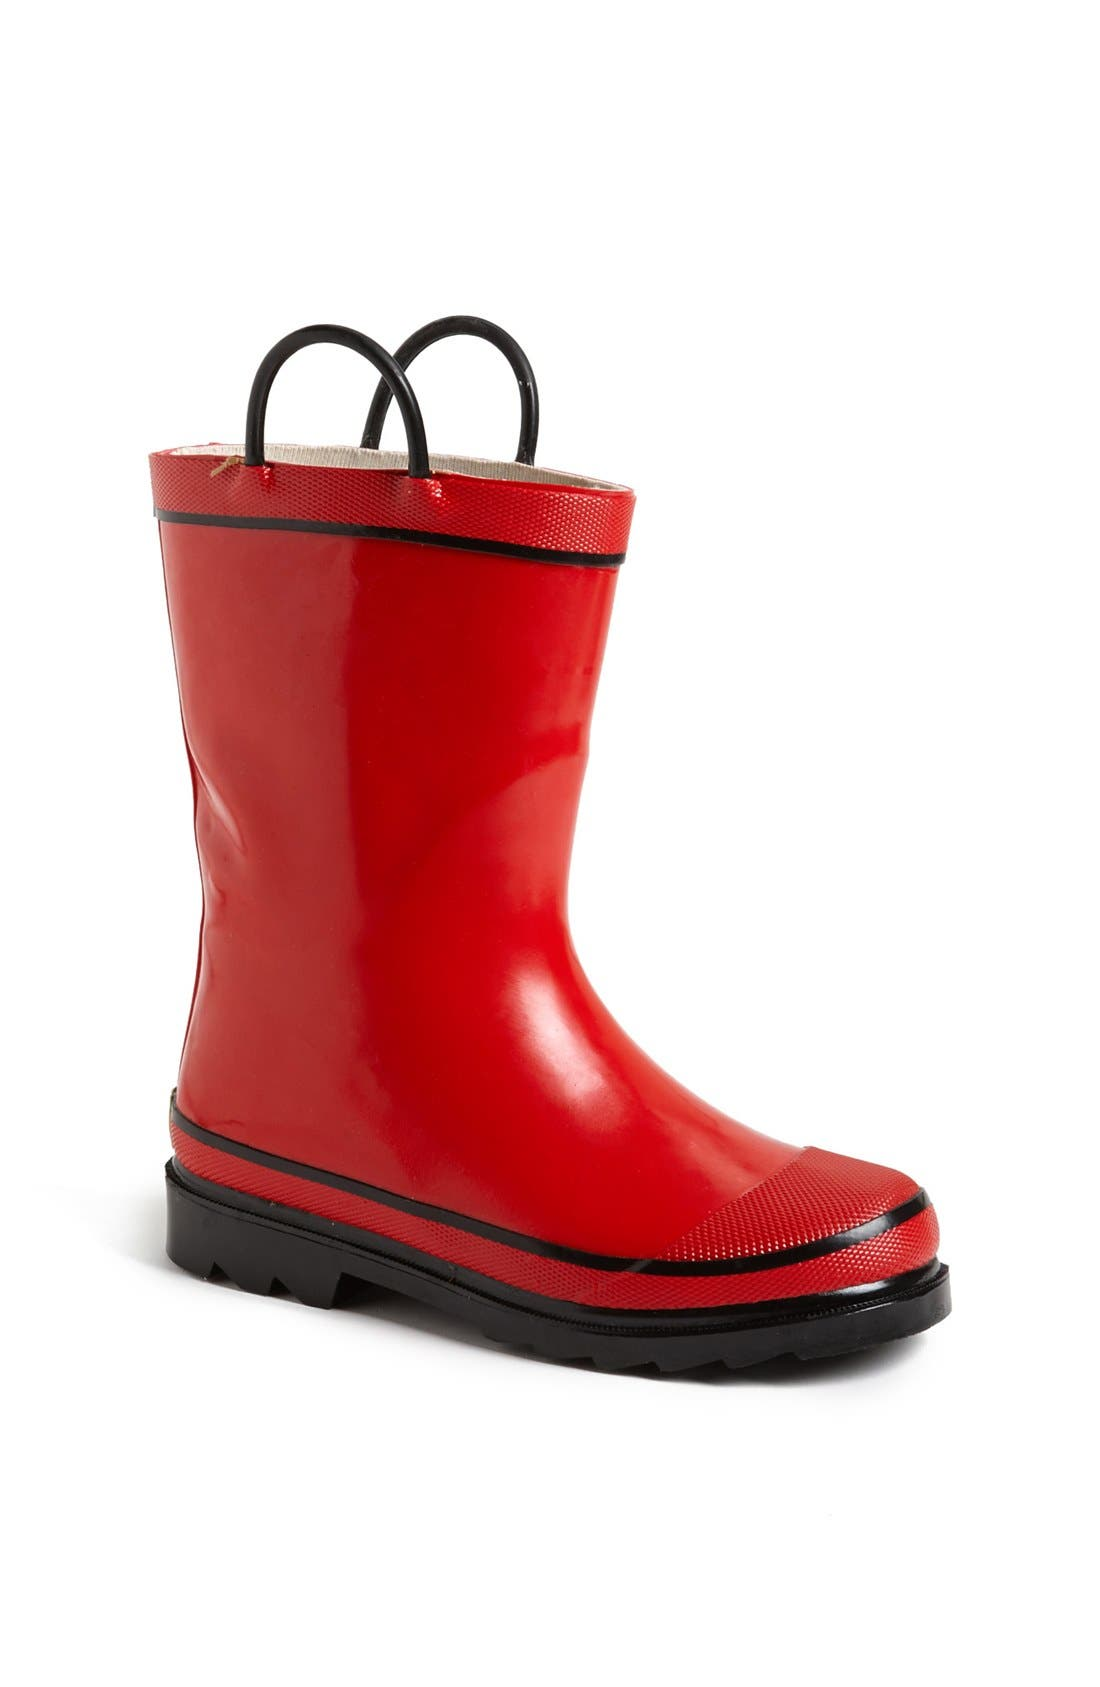 Main Image - Western Chief 'Firechief 2' Rain Boot  (Walker, Toddler, Little Kid & Big Kid)